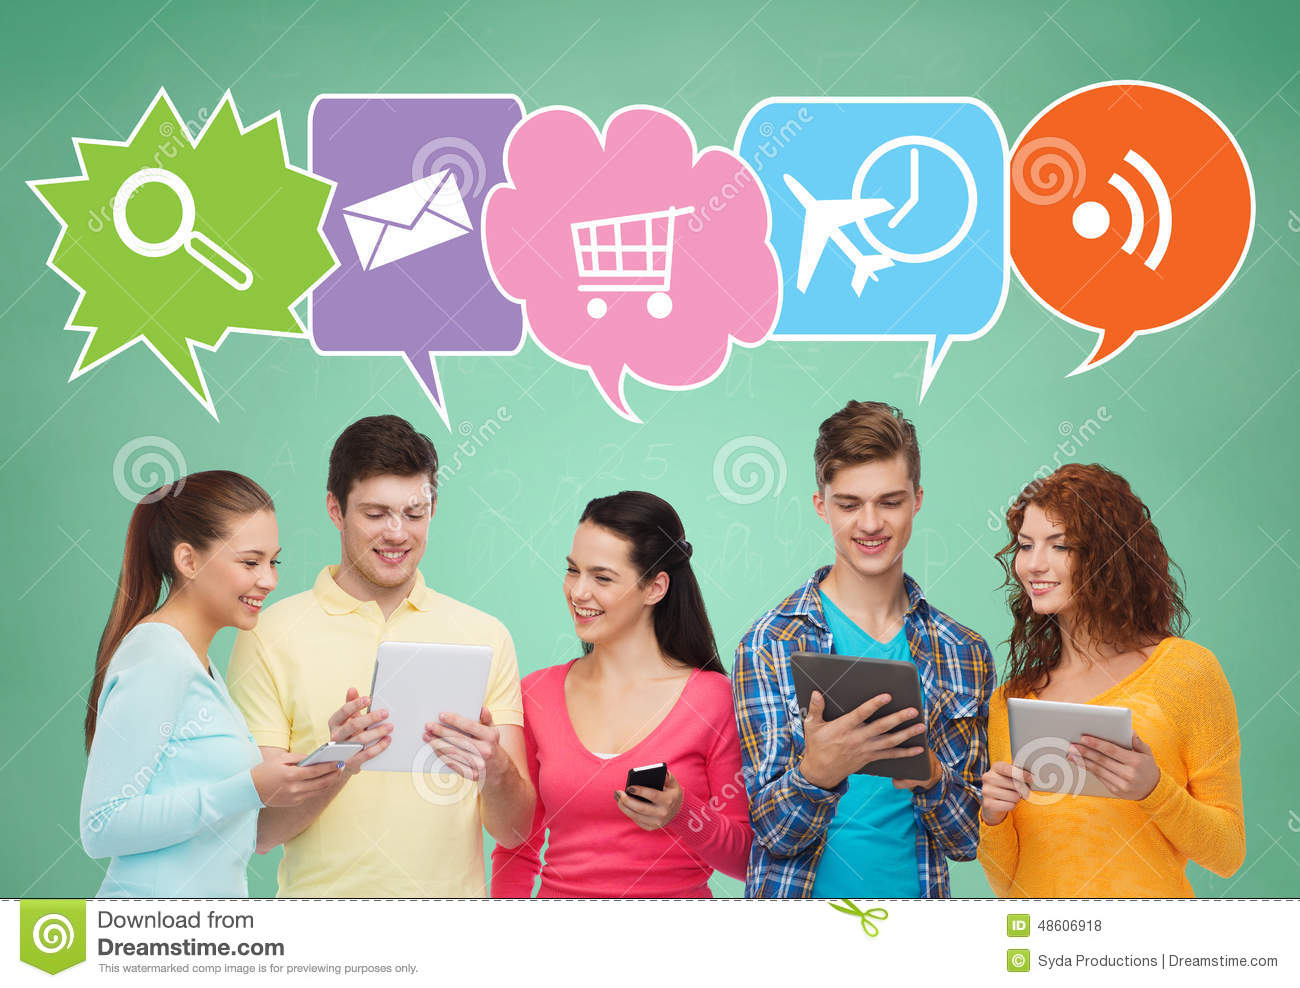 Effects of technology on teens are not all doom and gloom